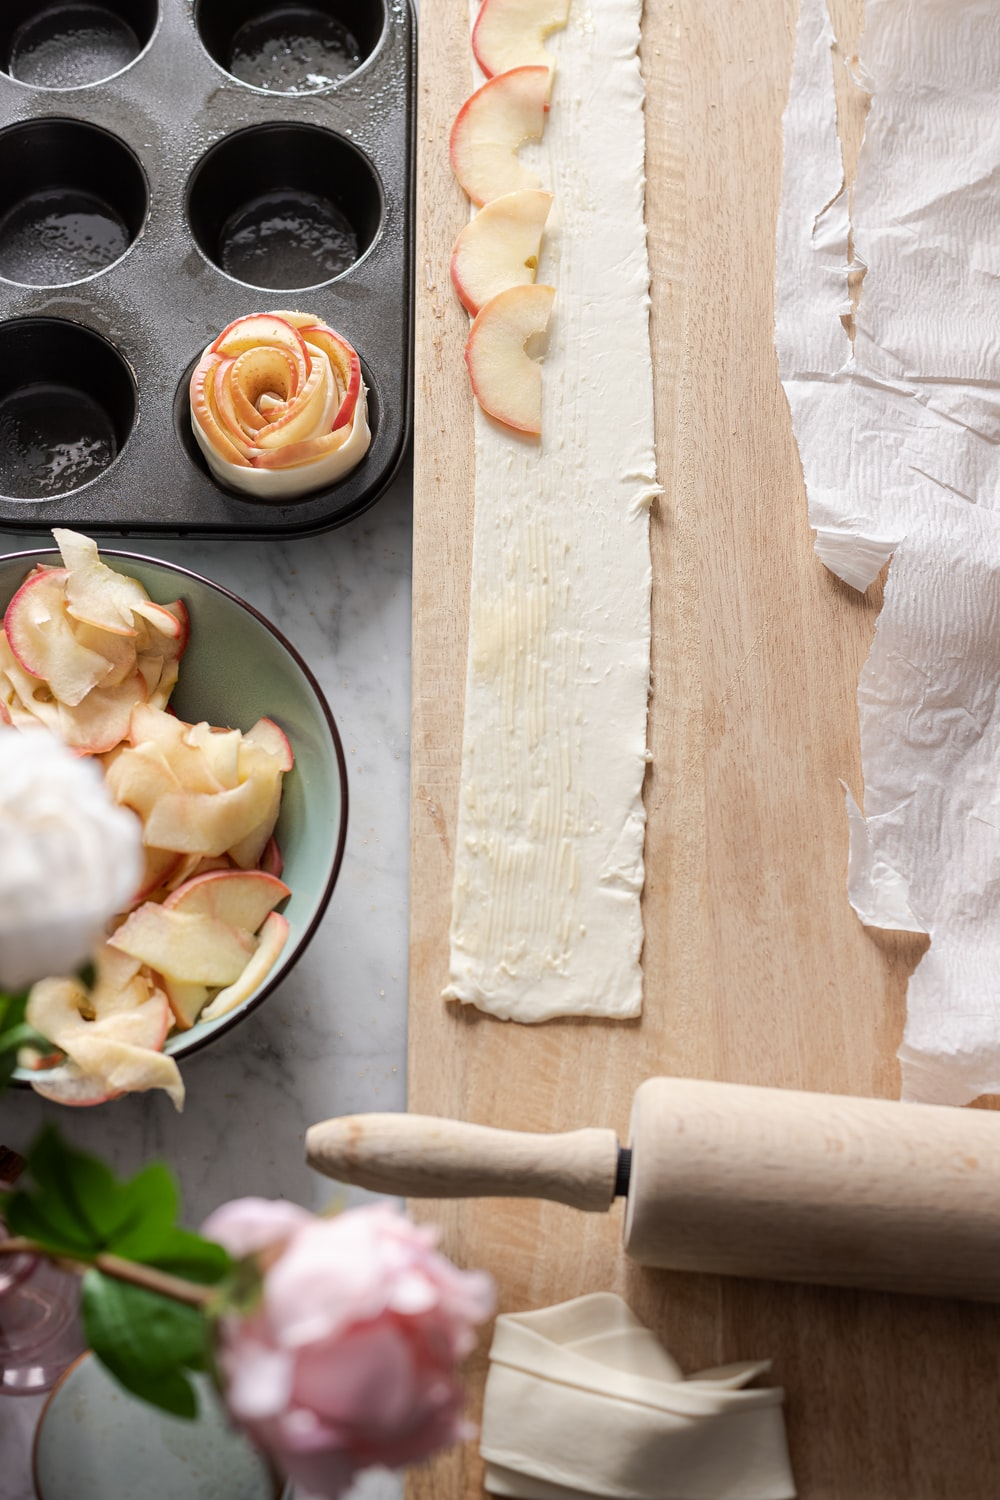 white rose on brown wooden chopping board